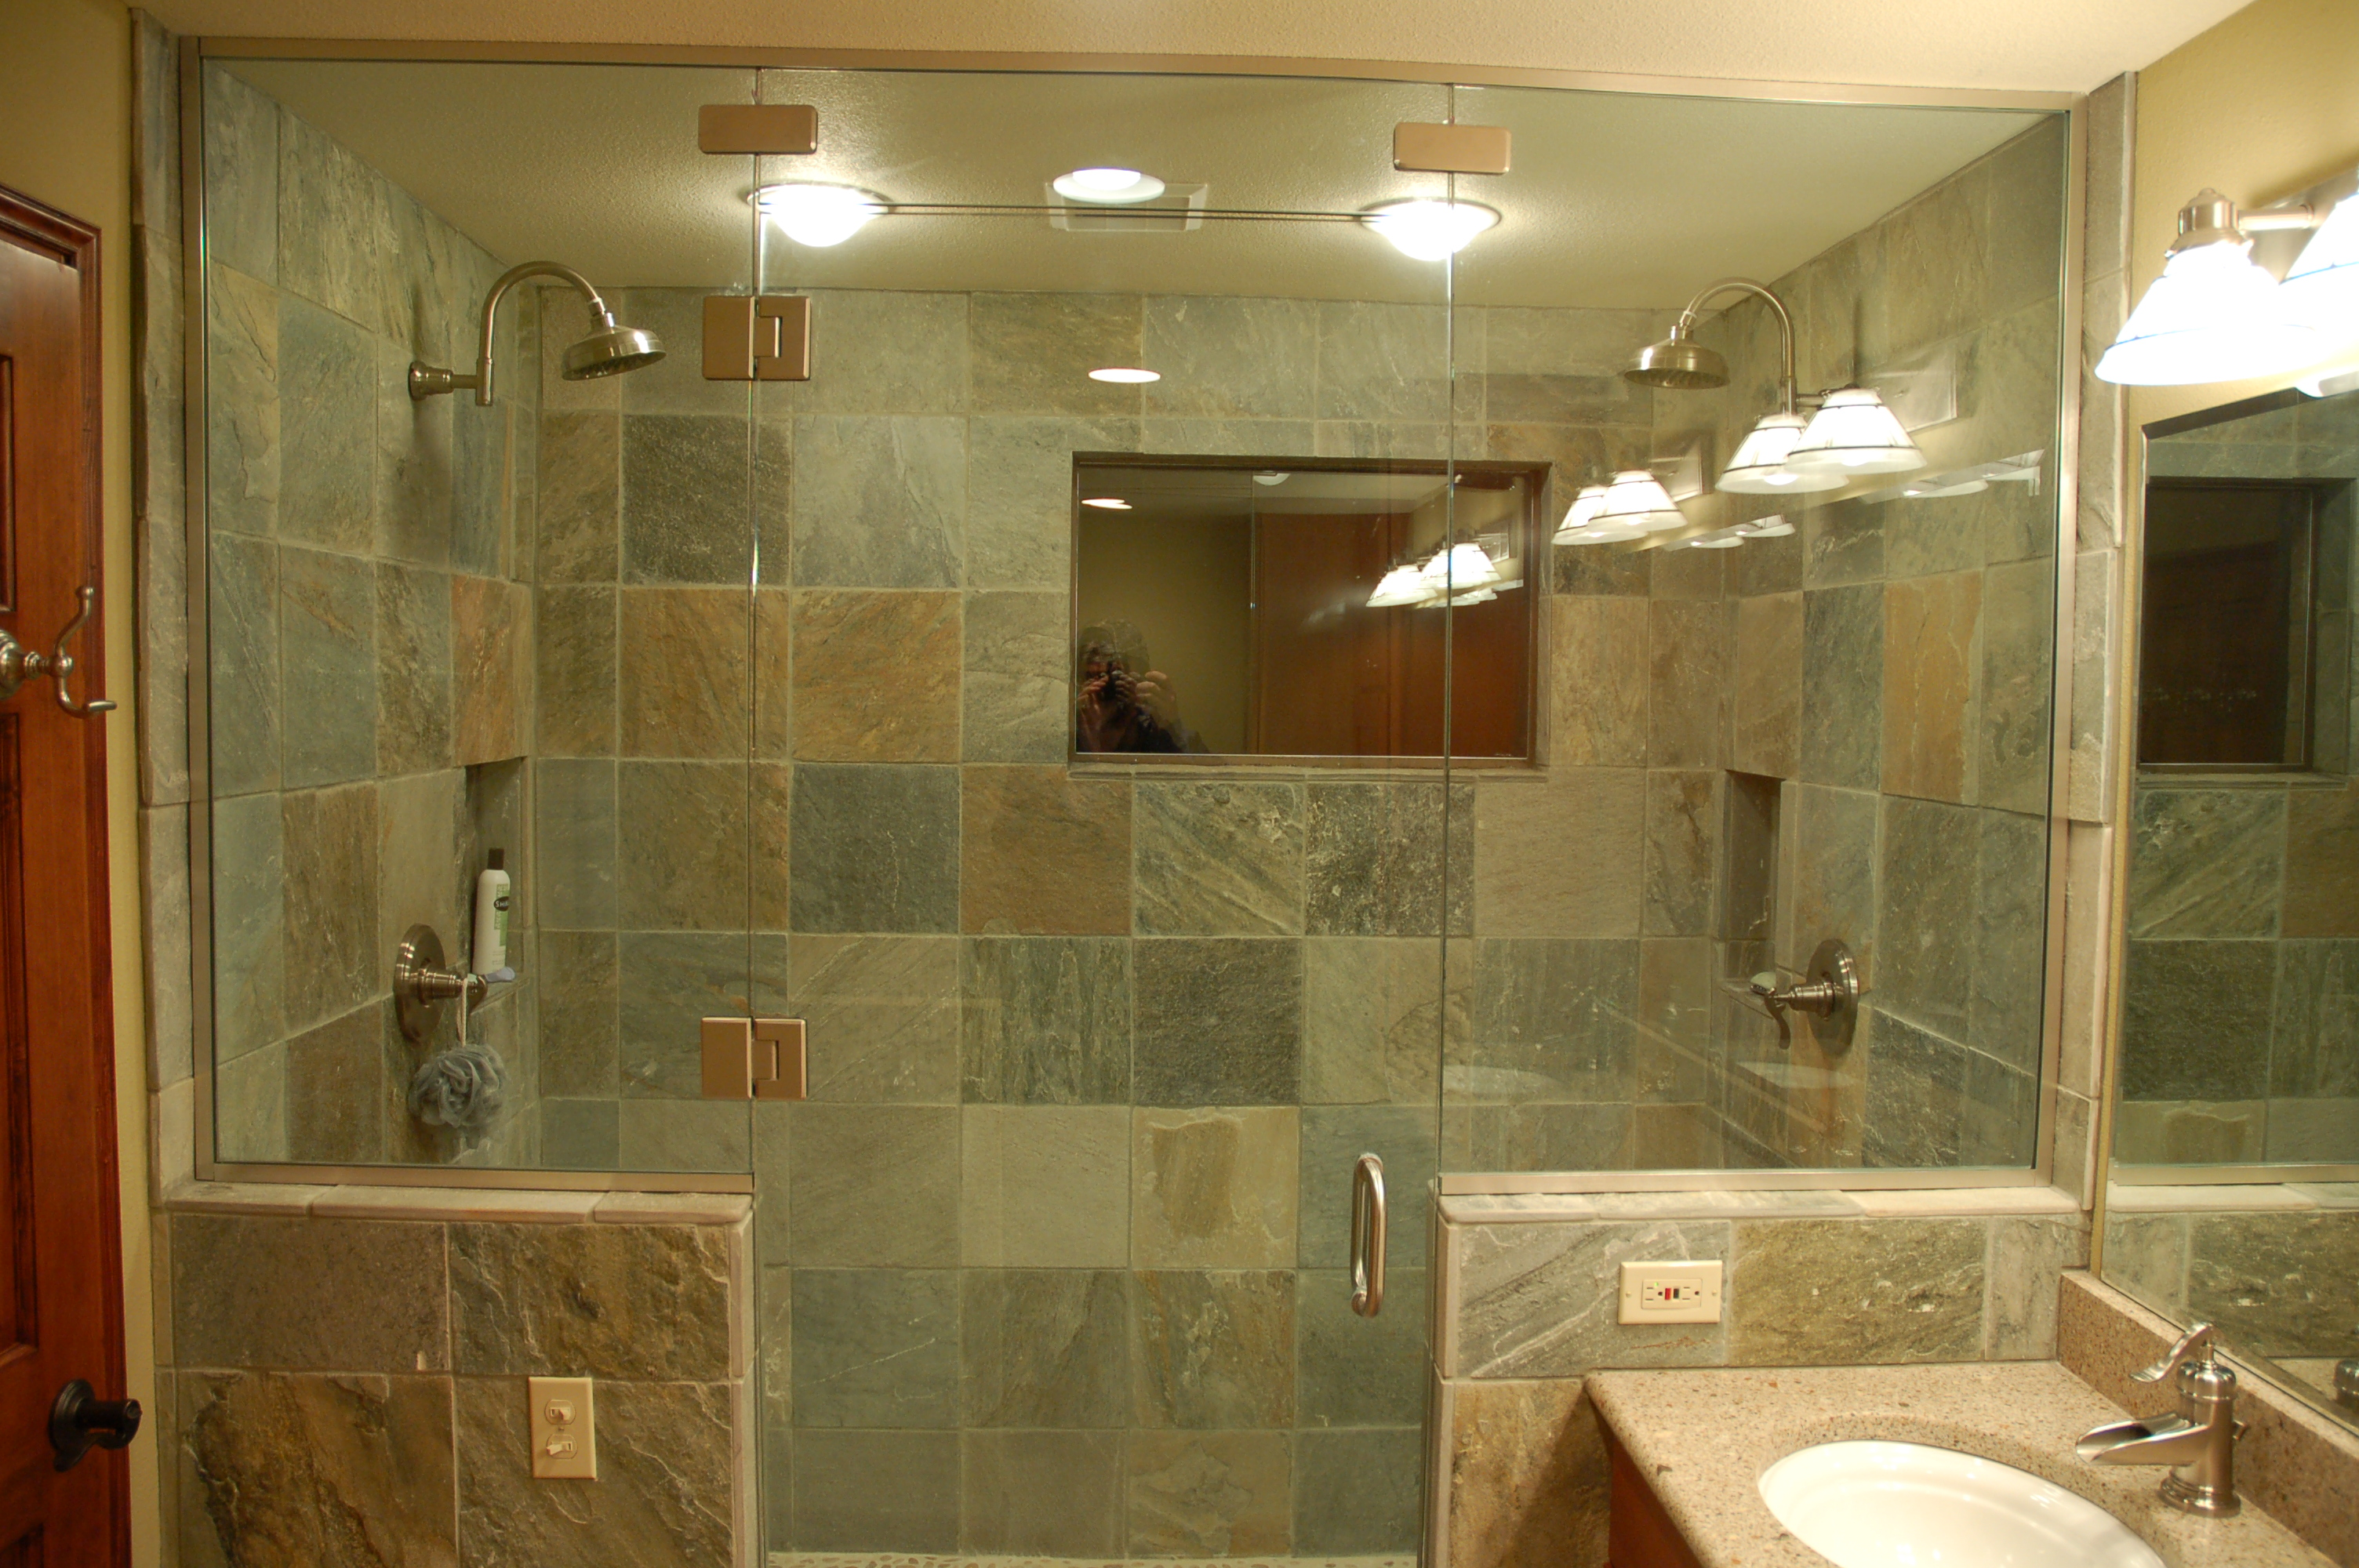 Awesome Bathroom Tiles Contemporary (View 3 of 10)